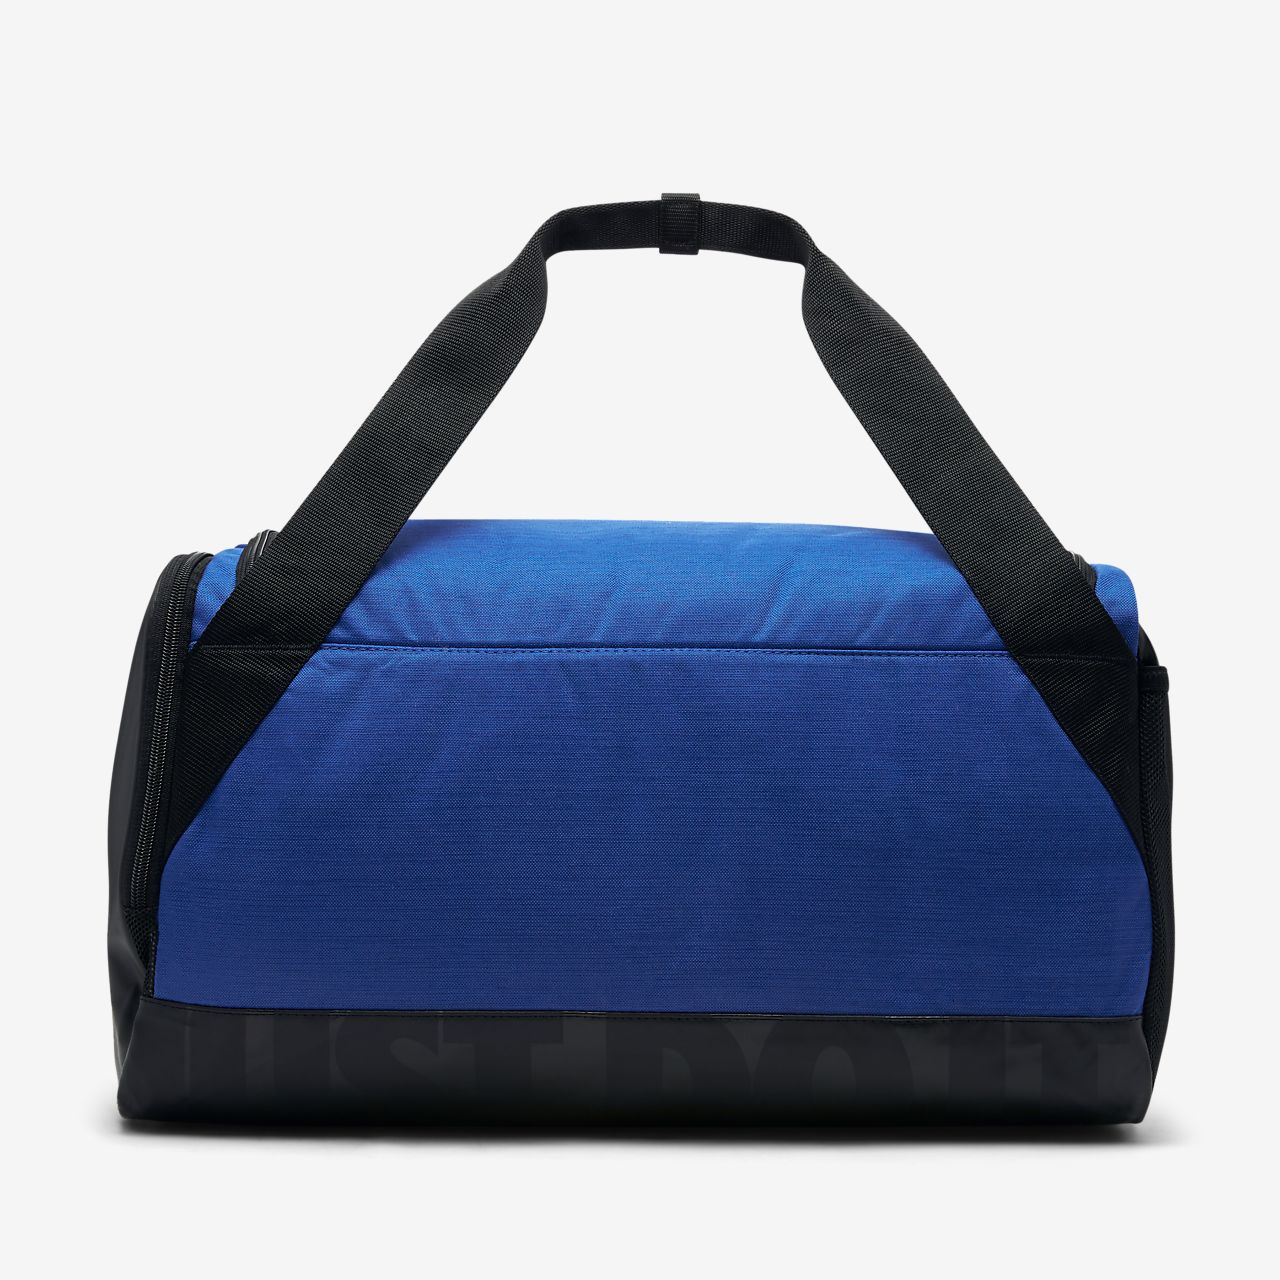 73651cda4ec2 ... Nike Brasilia (Small) Training Duffel Bag